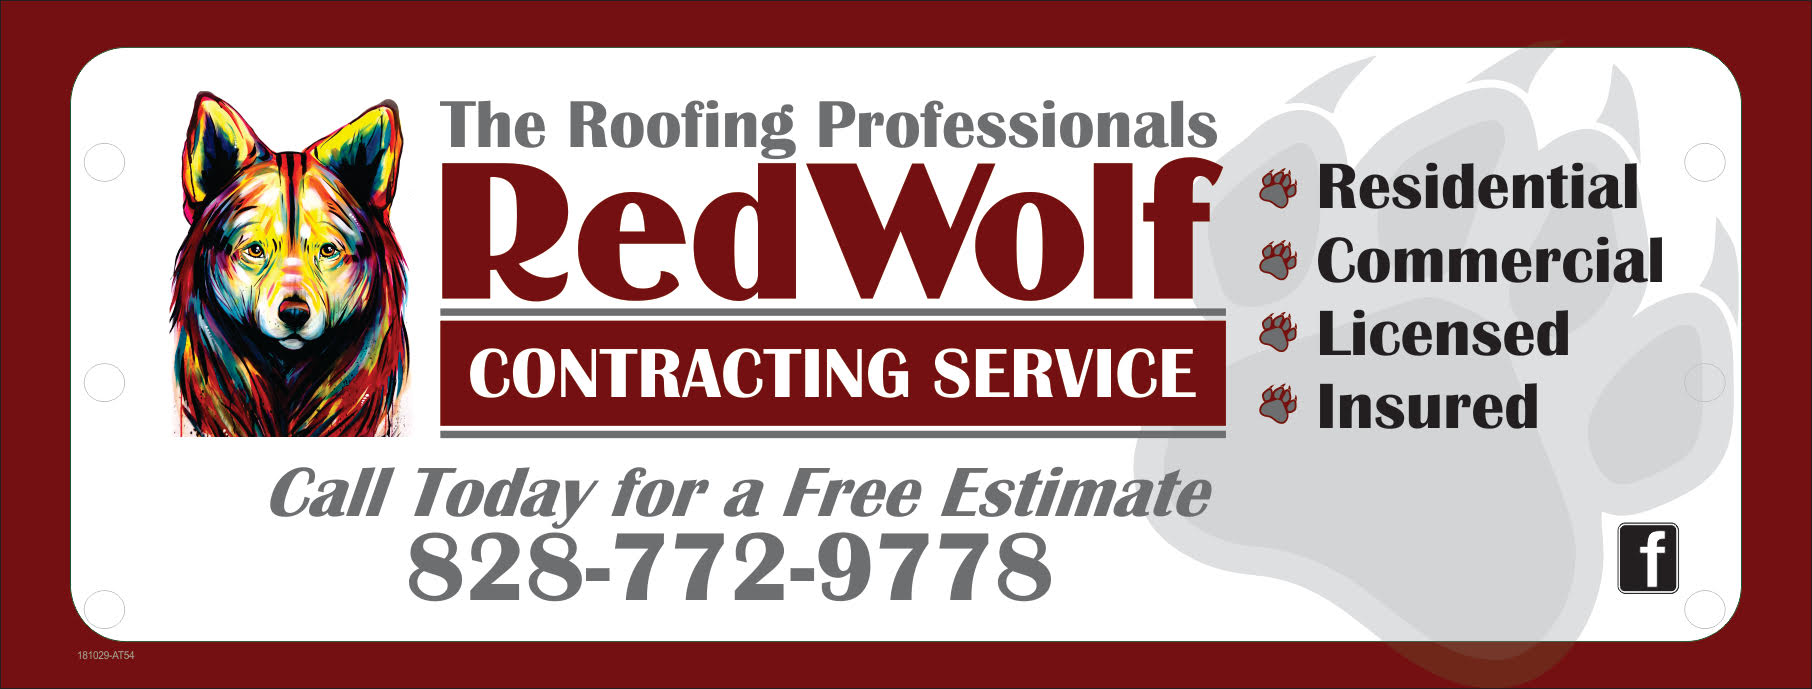 Contact RedWolf Contracting Services for all of your roofing needs. Whether its damage from a storm or you are in need of a roof replacement, Matt & the team can help you figure out the correct solution in a timely manner. Give them a call (828)772-9778 or visit their website  NC Roofers  to set up a free roof inspection and tell them Hunter sent you!